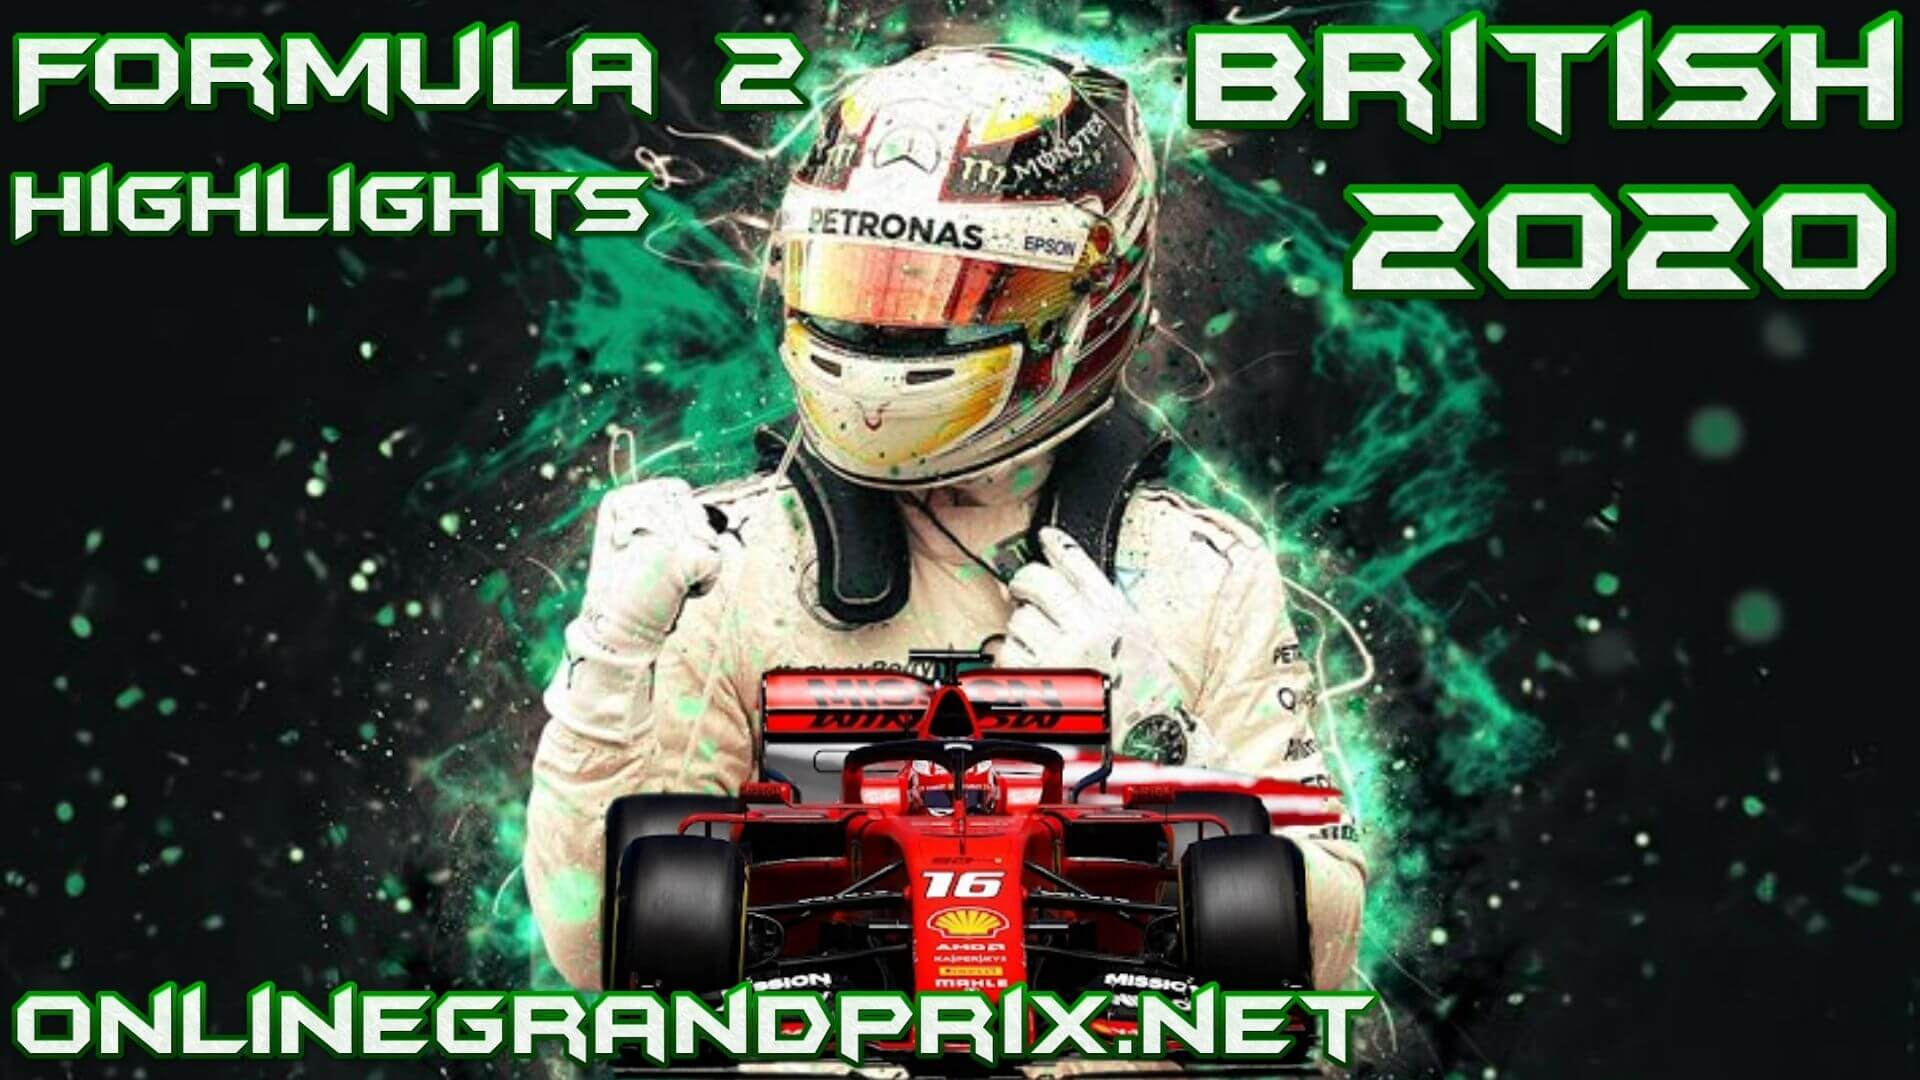 British GP F2 Highlights 2020